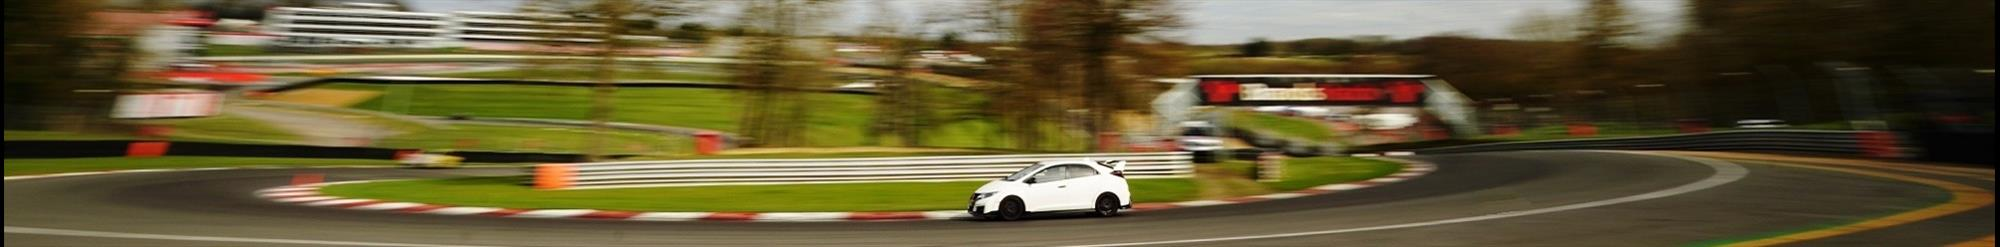 General Track Day